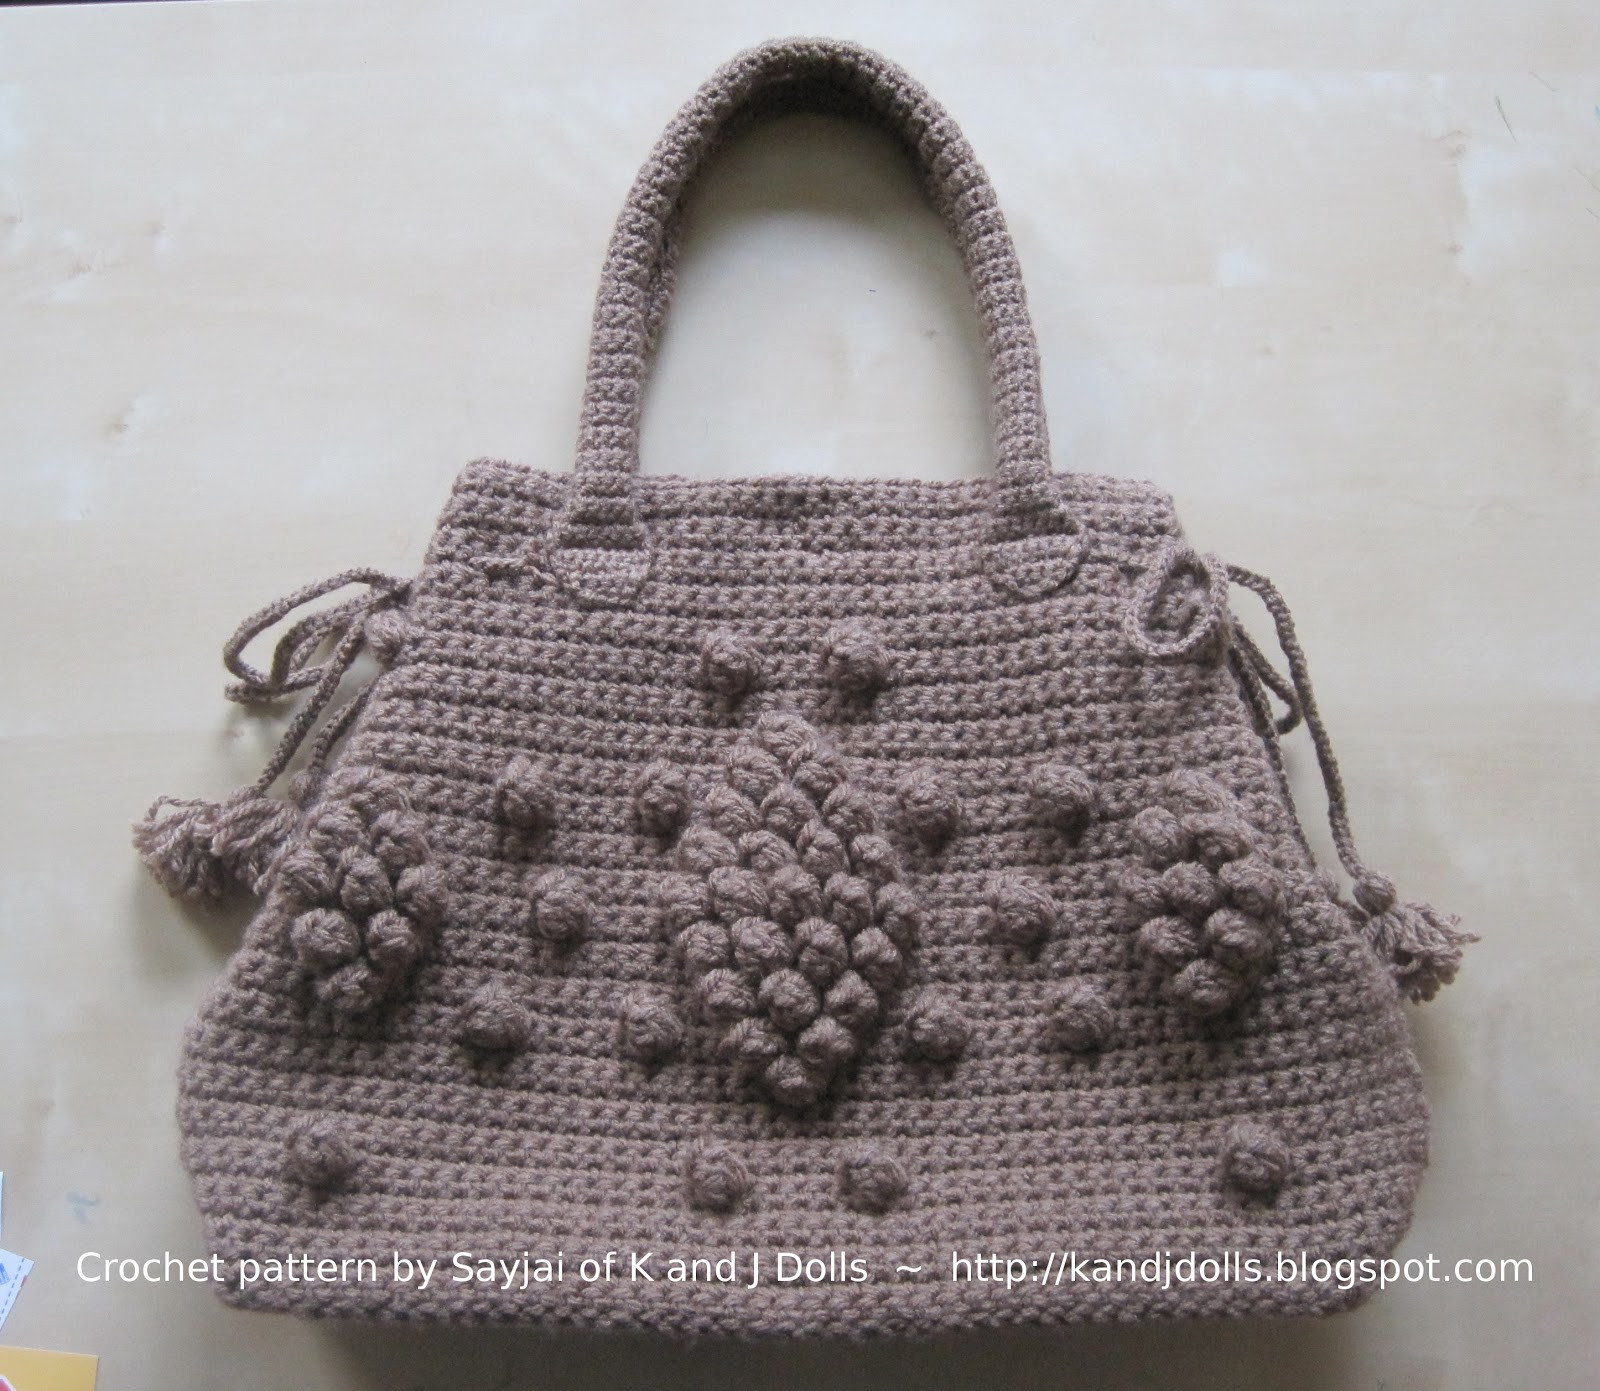 Crochet Purse Pattern Elegant Taupe Bag Crochet Pattern Sayjai Amigurumi Crochet Of Adorable 44 Photos Crochet Purse Pattern